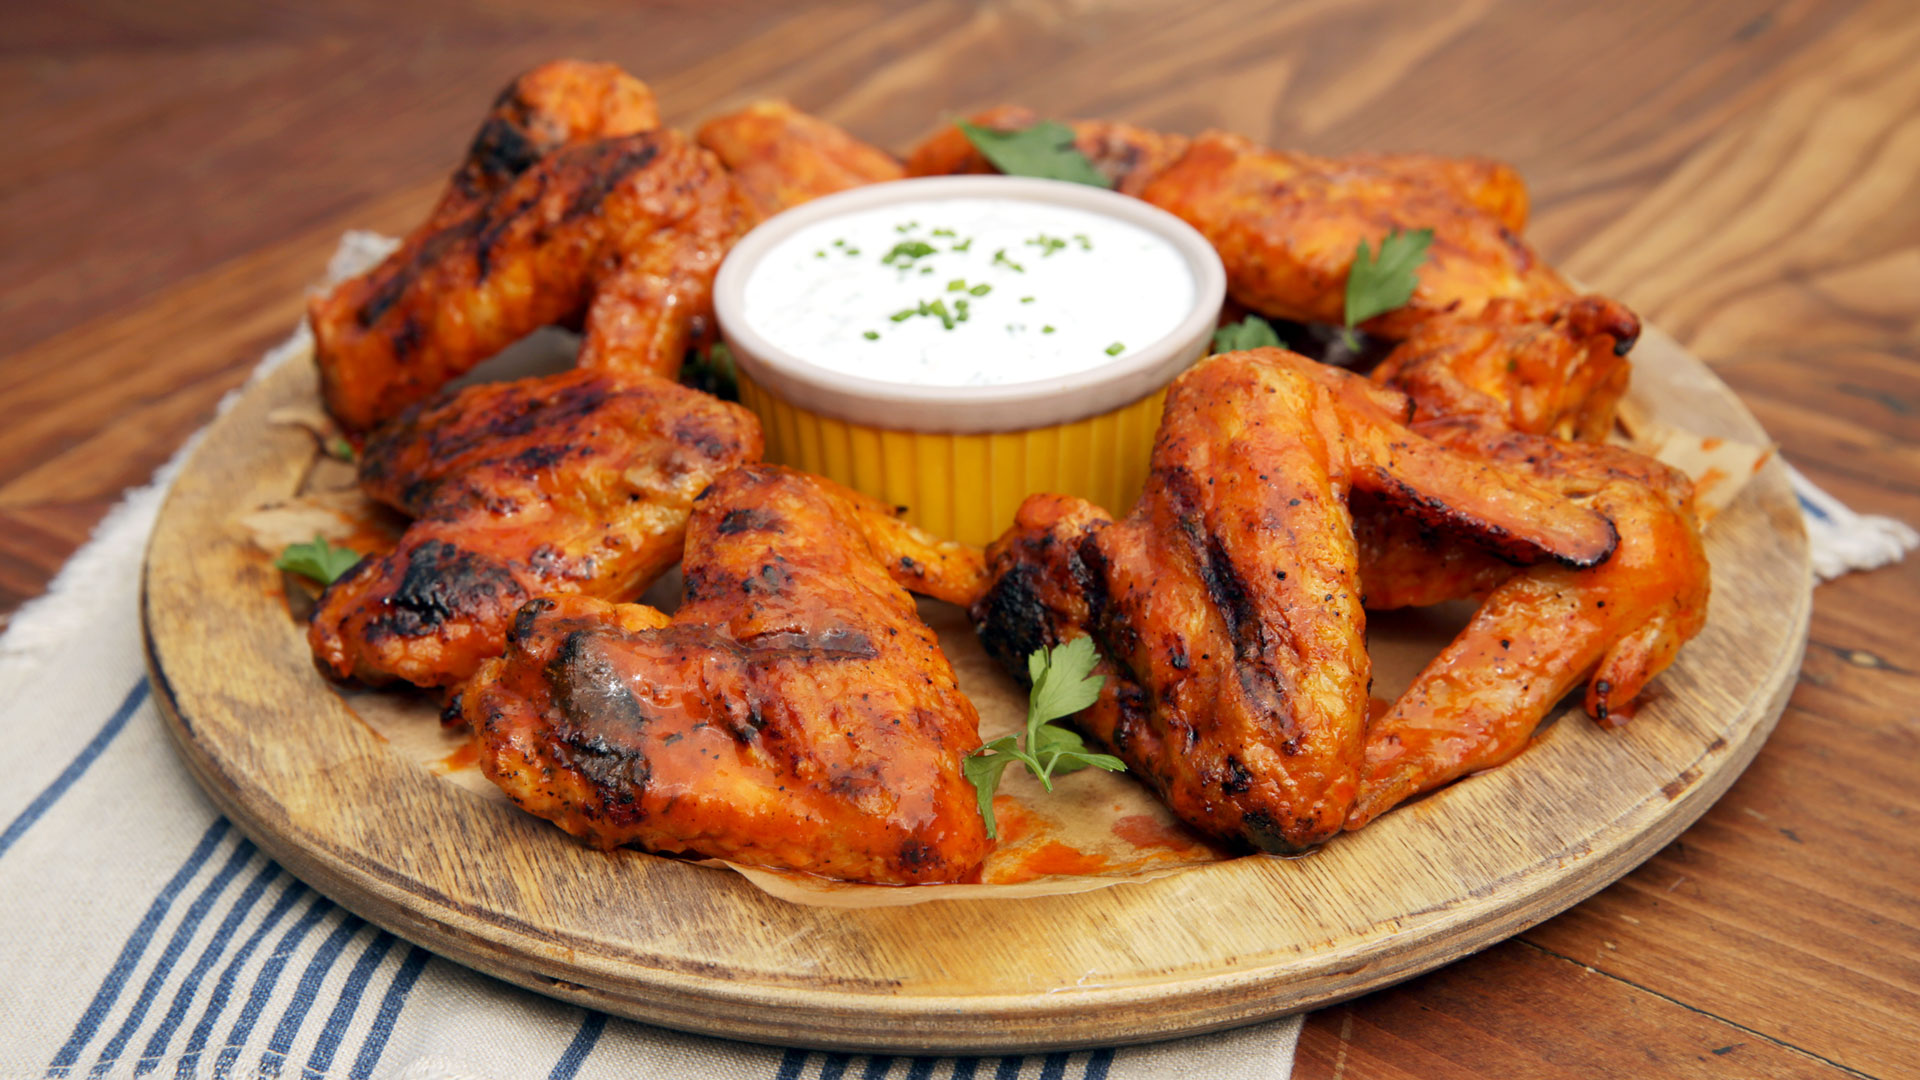 Awesome Homemade Ranch Recipe Ken Wings Near Me That Deliver Ken Wings Near Me Colorado Springs Grilled Spicy Ken Wings nice food Chicken Wings Near Me